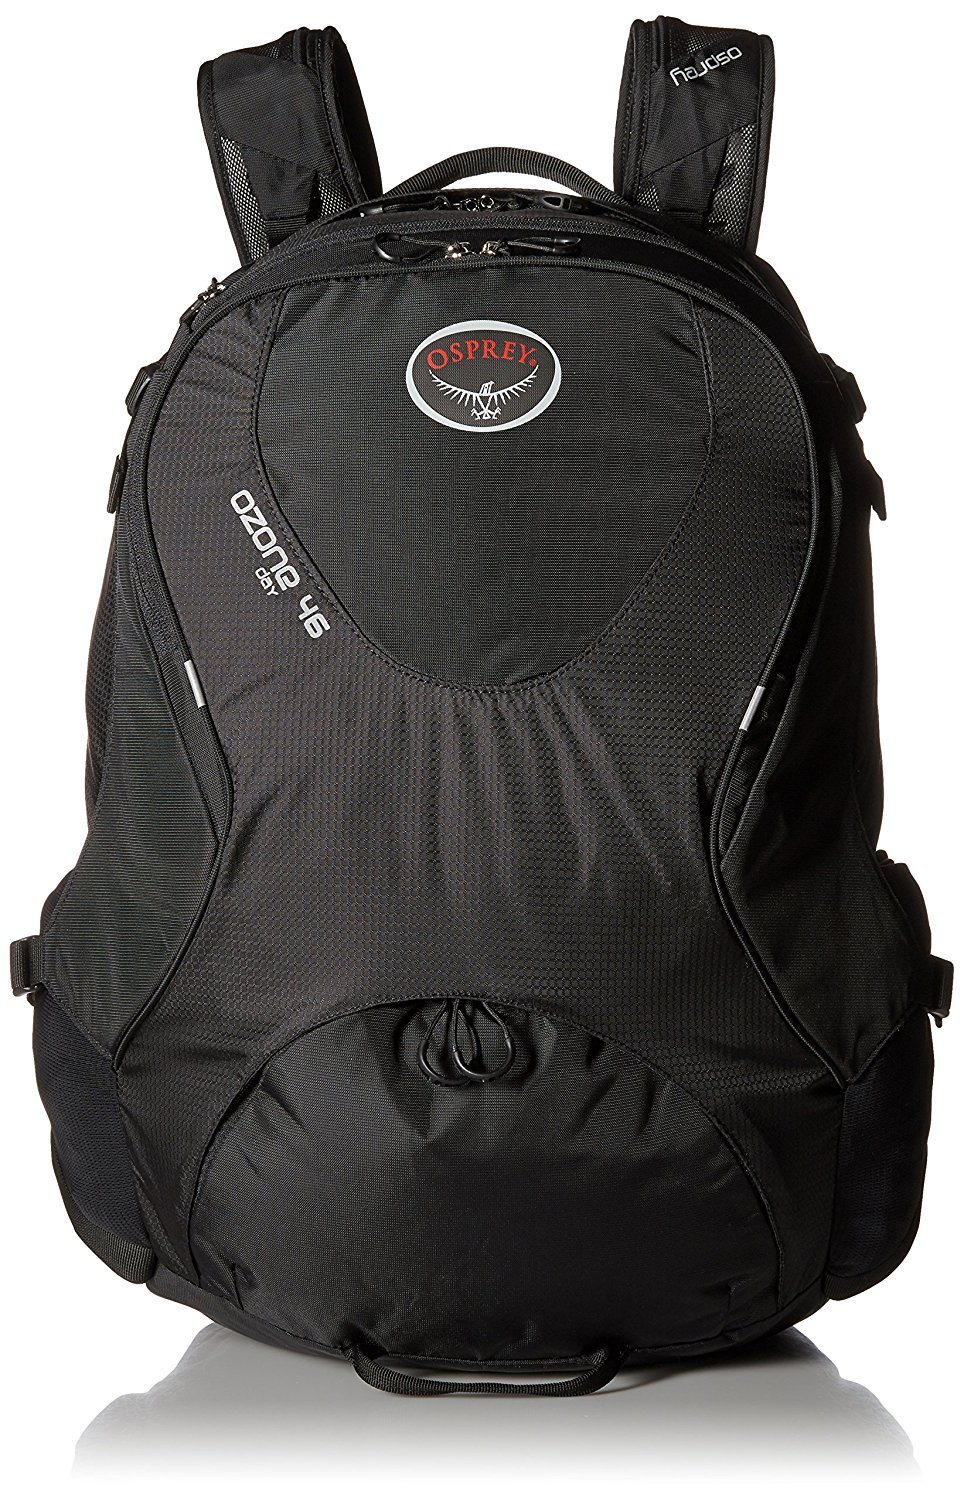 couples_coordinates_travel_essentials_osprey_ozone_46l_travel_pack